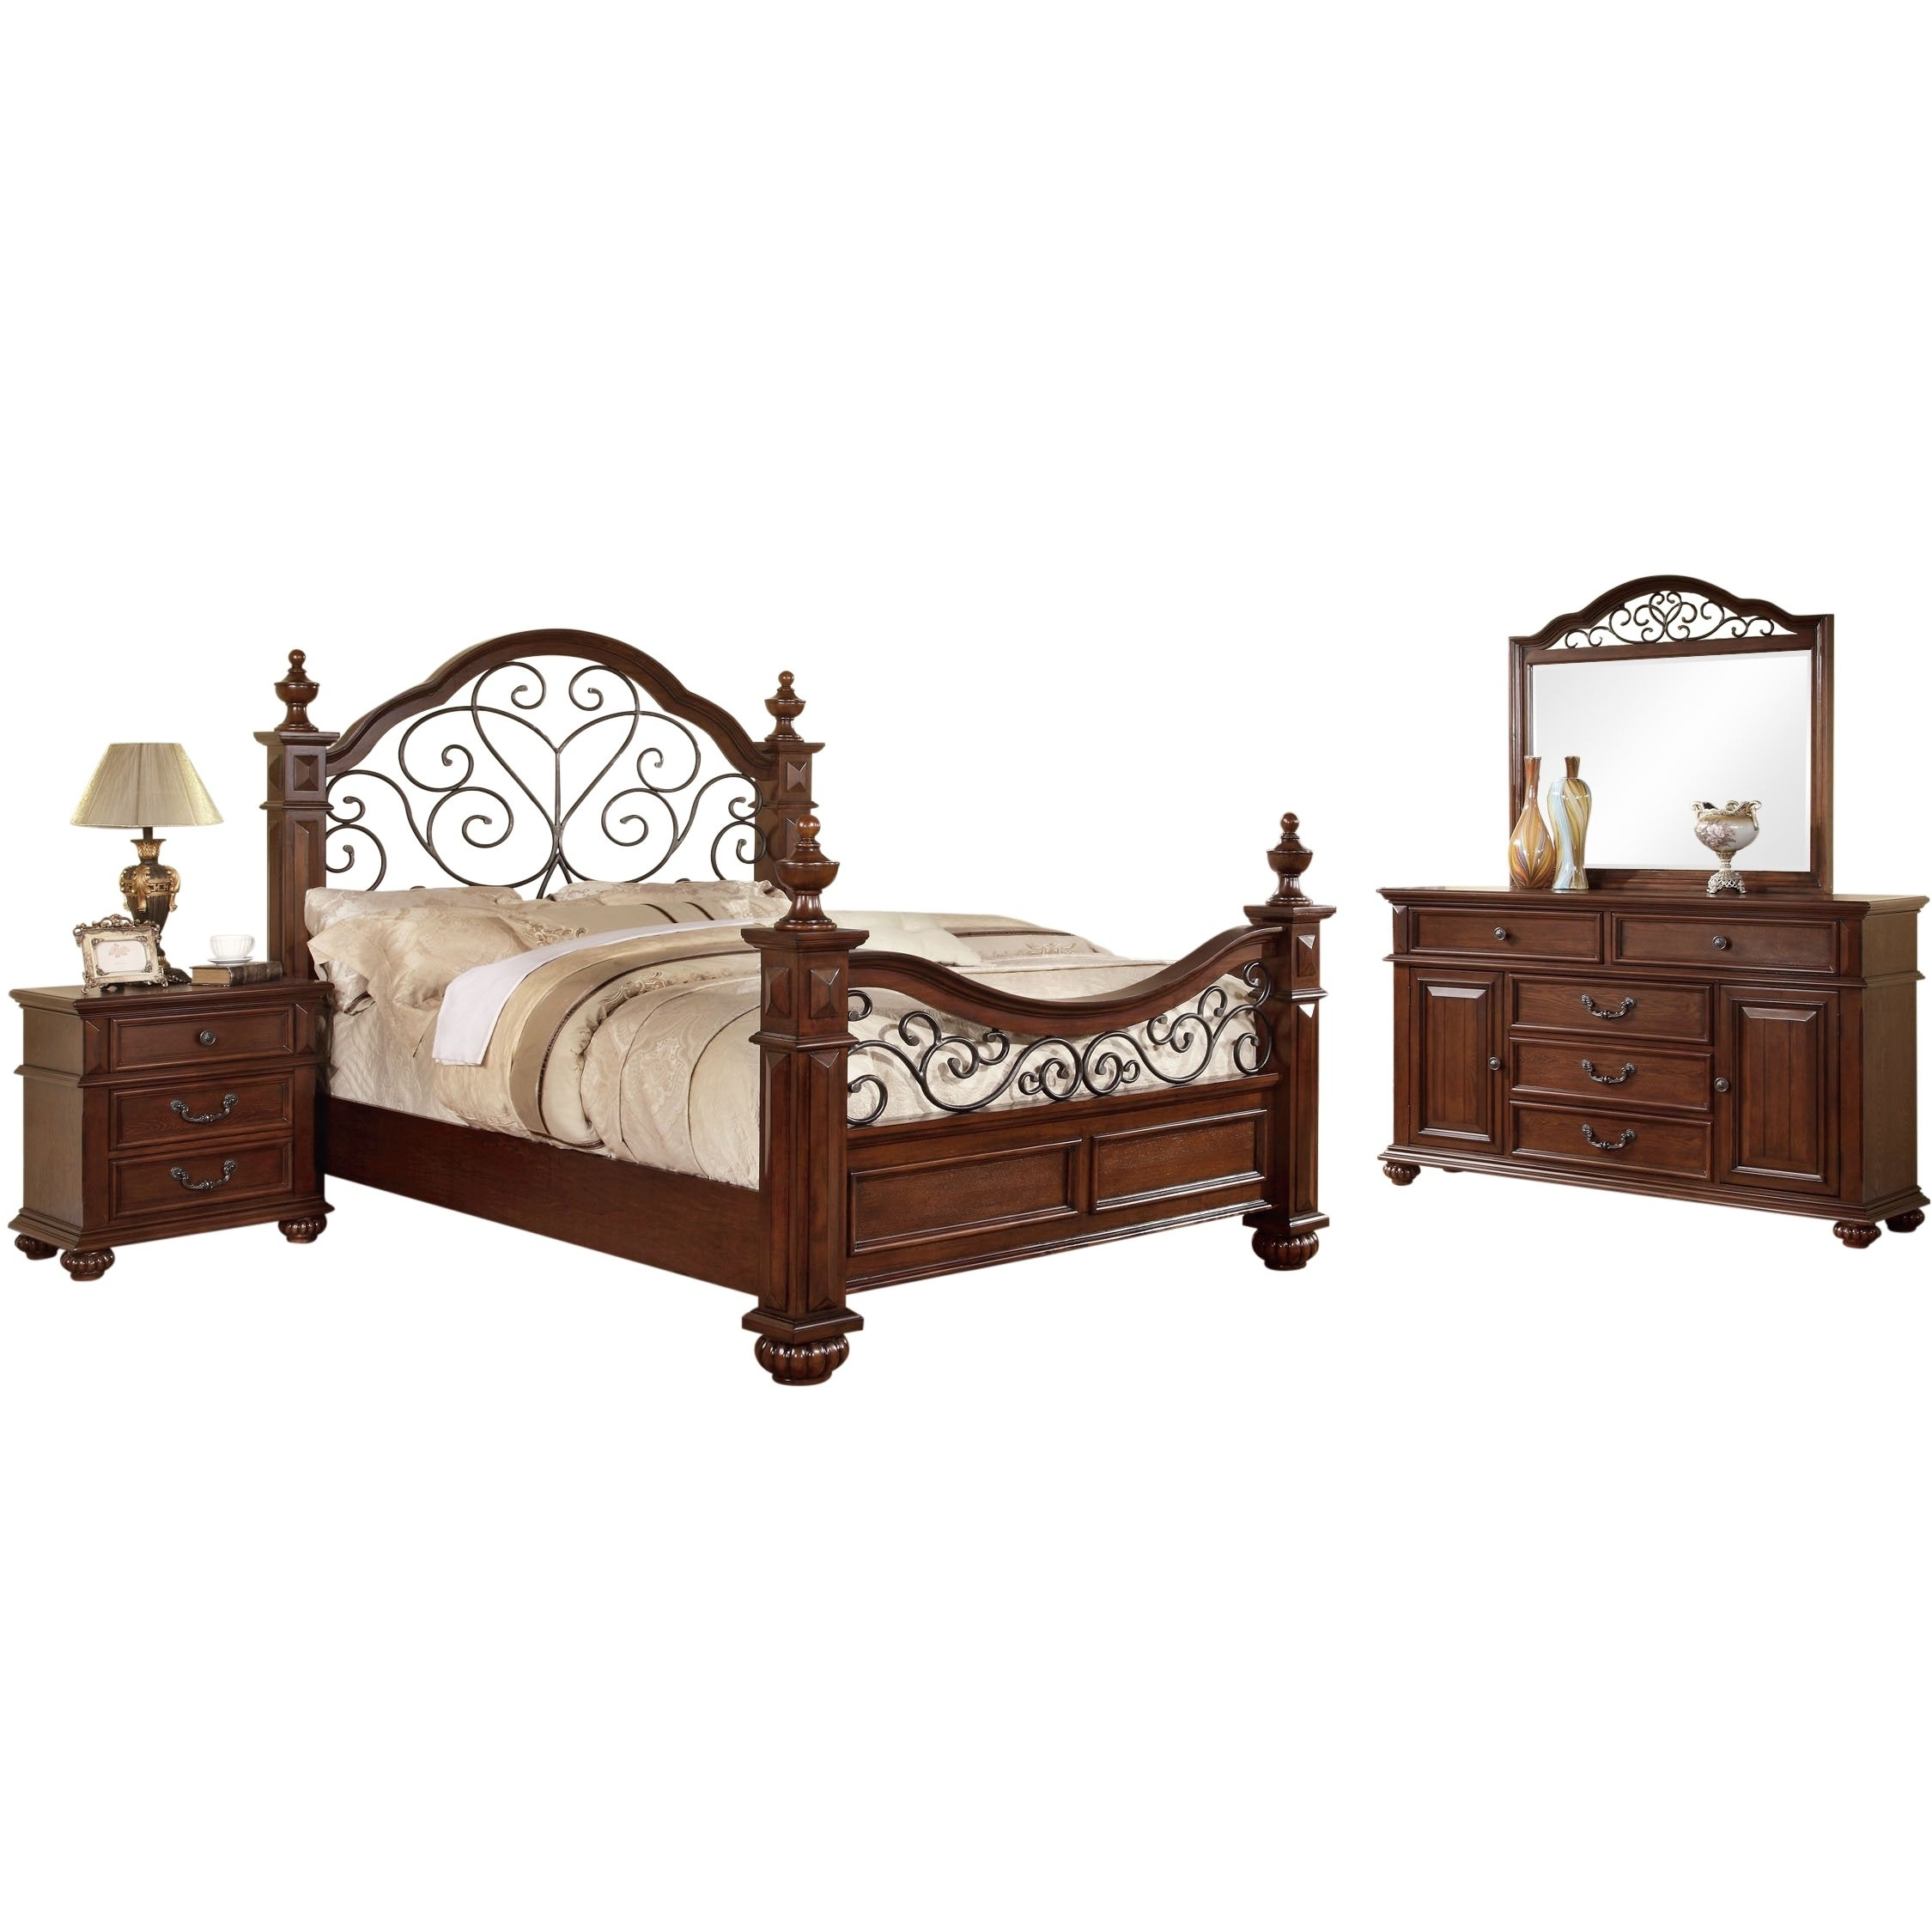 Furniture of America Sumy Traditional Oak 4-piece Bedroom Set